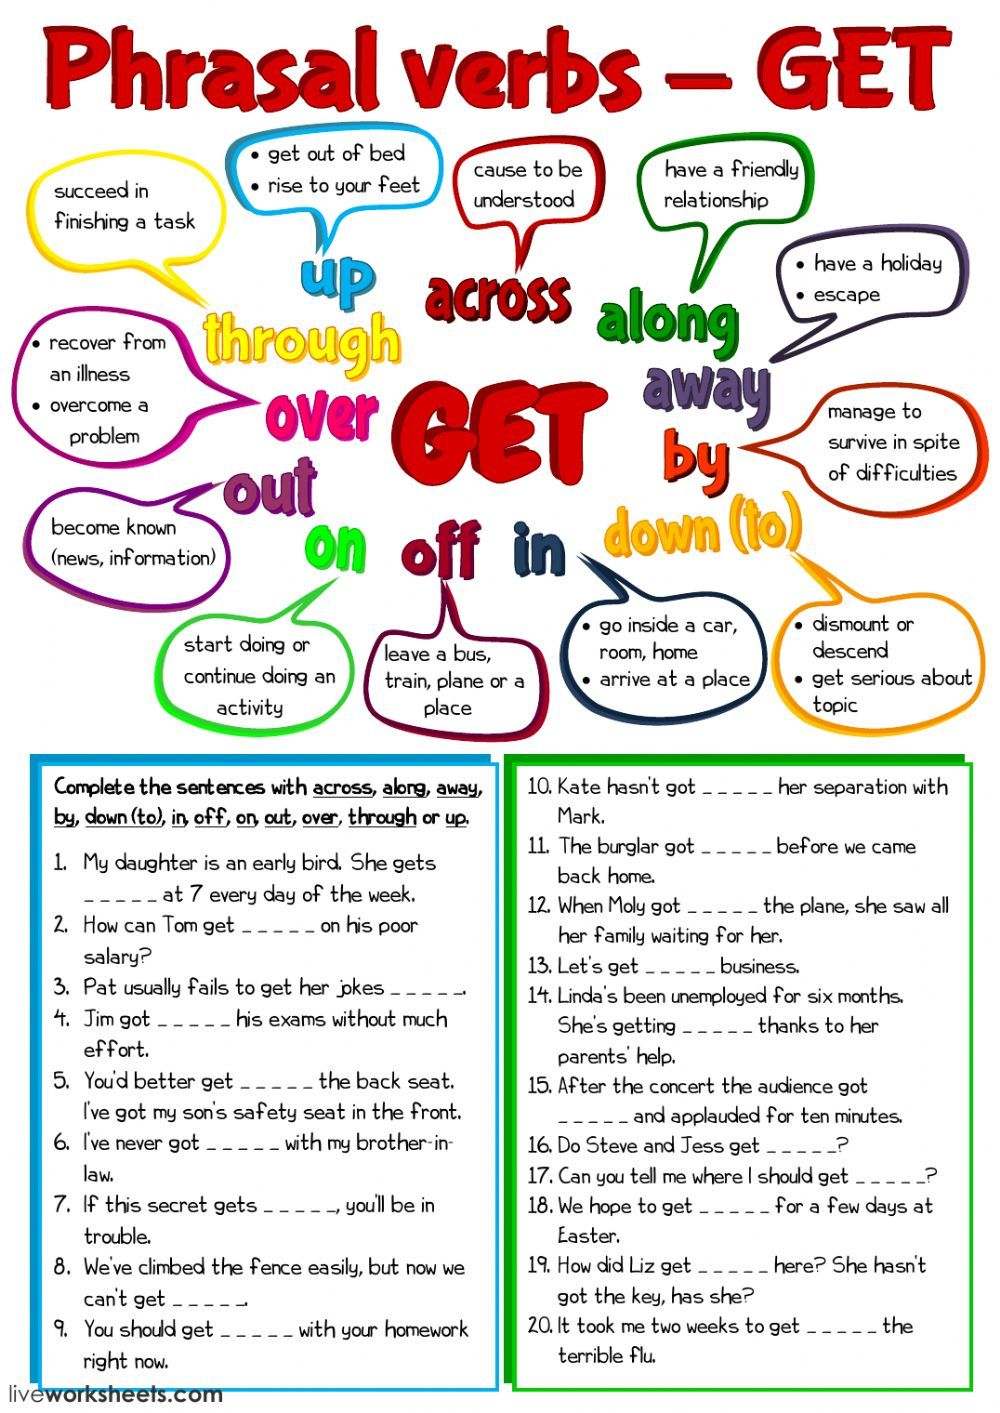 Phrasal Verbs Interactive And Downloadable Worksheet You Can Do The Exercises Online Or D Phrasal Verbs En Ingles Ingles Para Preescolar Phrasal Verbs With Up [ 1413 x 1000 Pixel ]